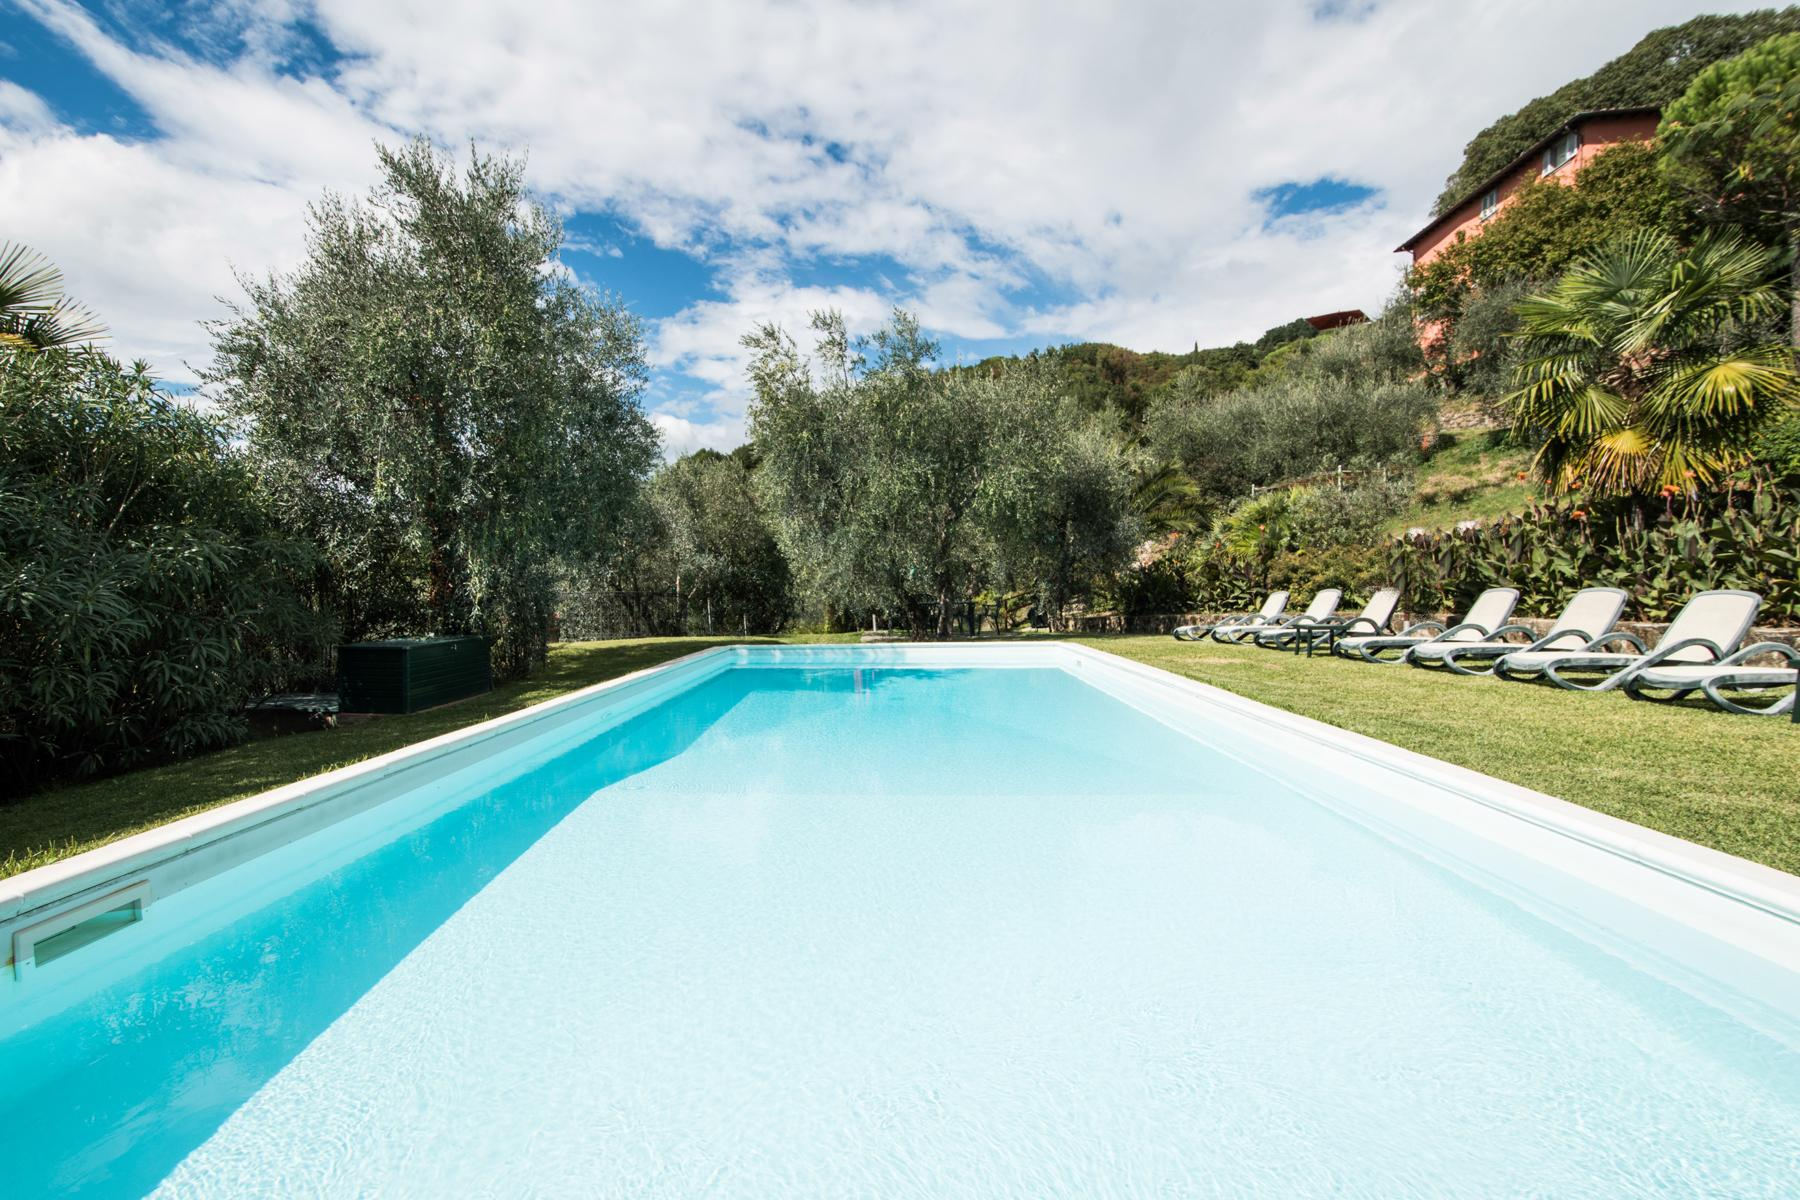 Marvelous villa in the countryside of Lucca - 26